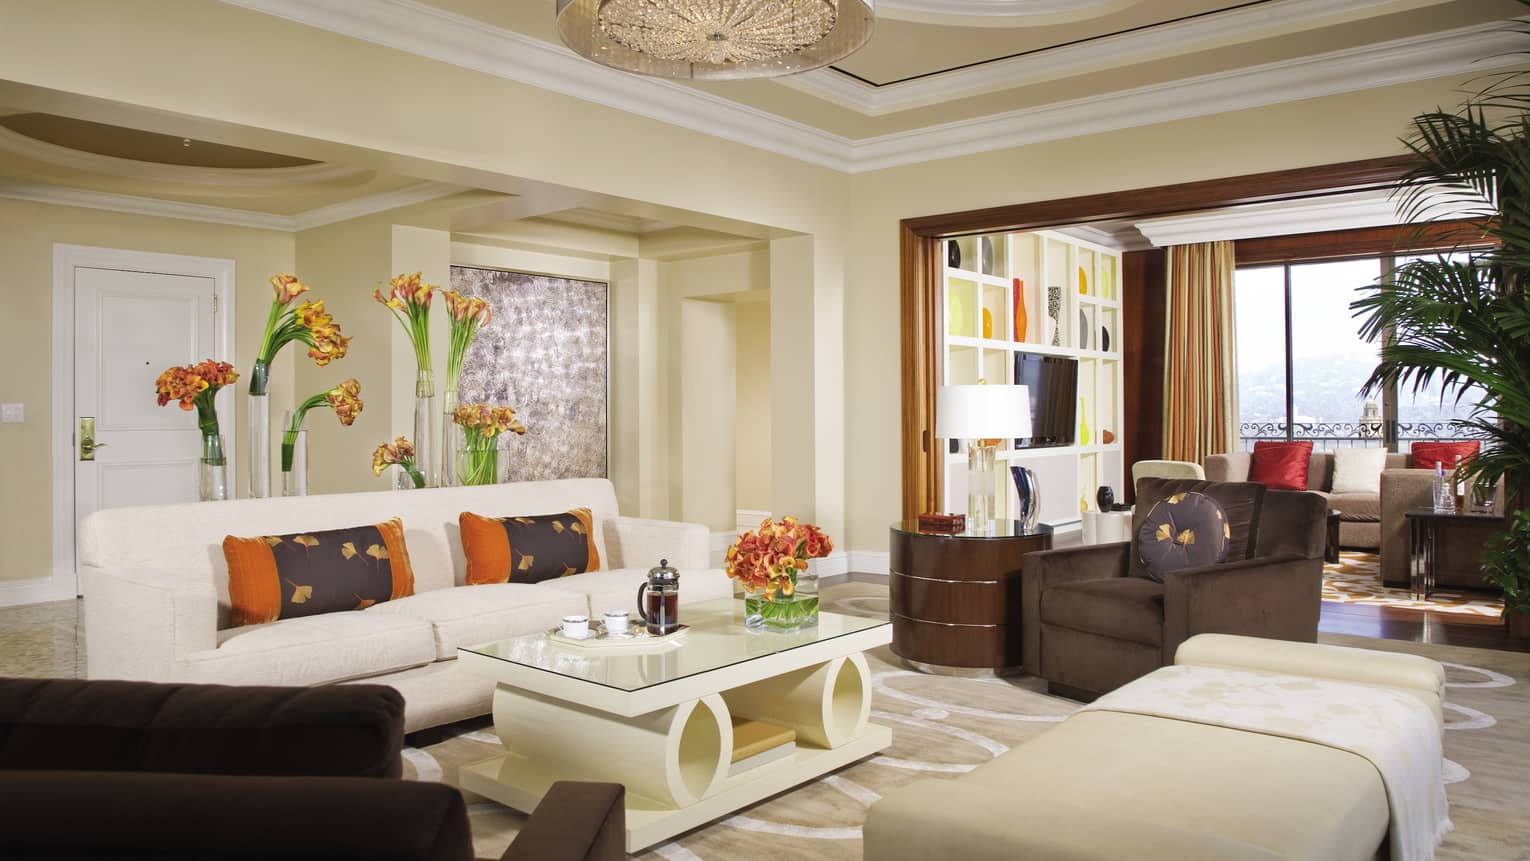 Penthouse Suite white sofa, modern coffee table, chaise, armchair by second seating area